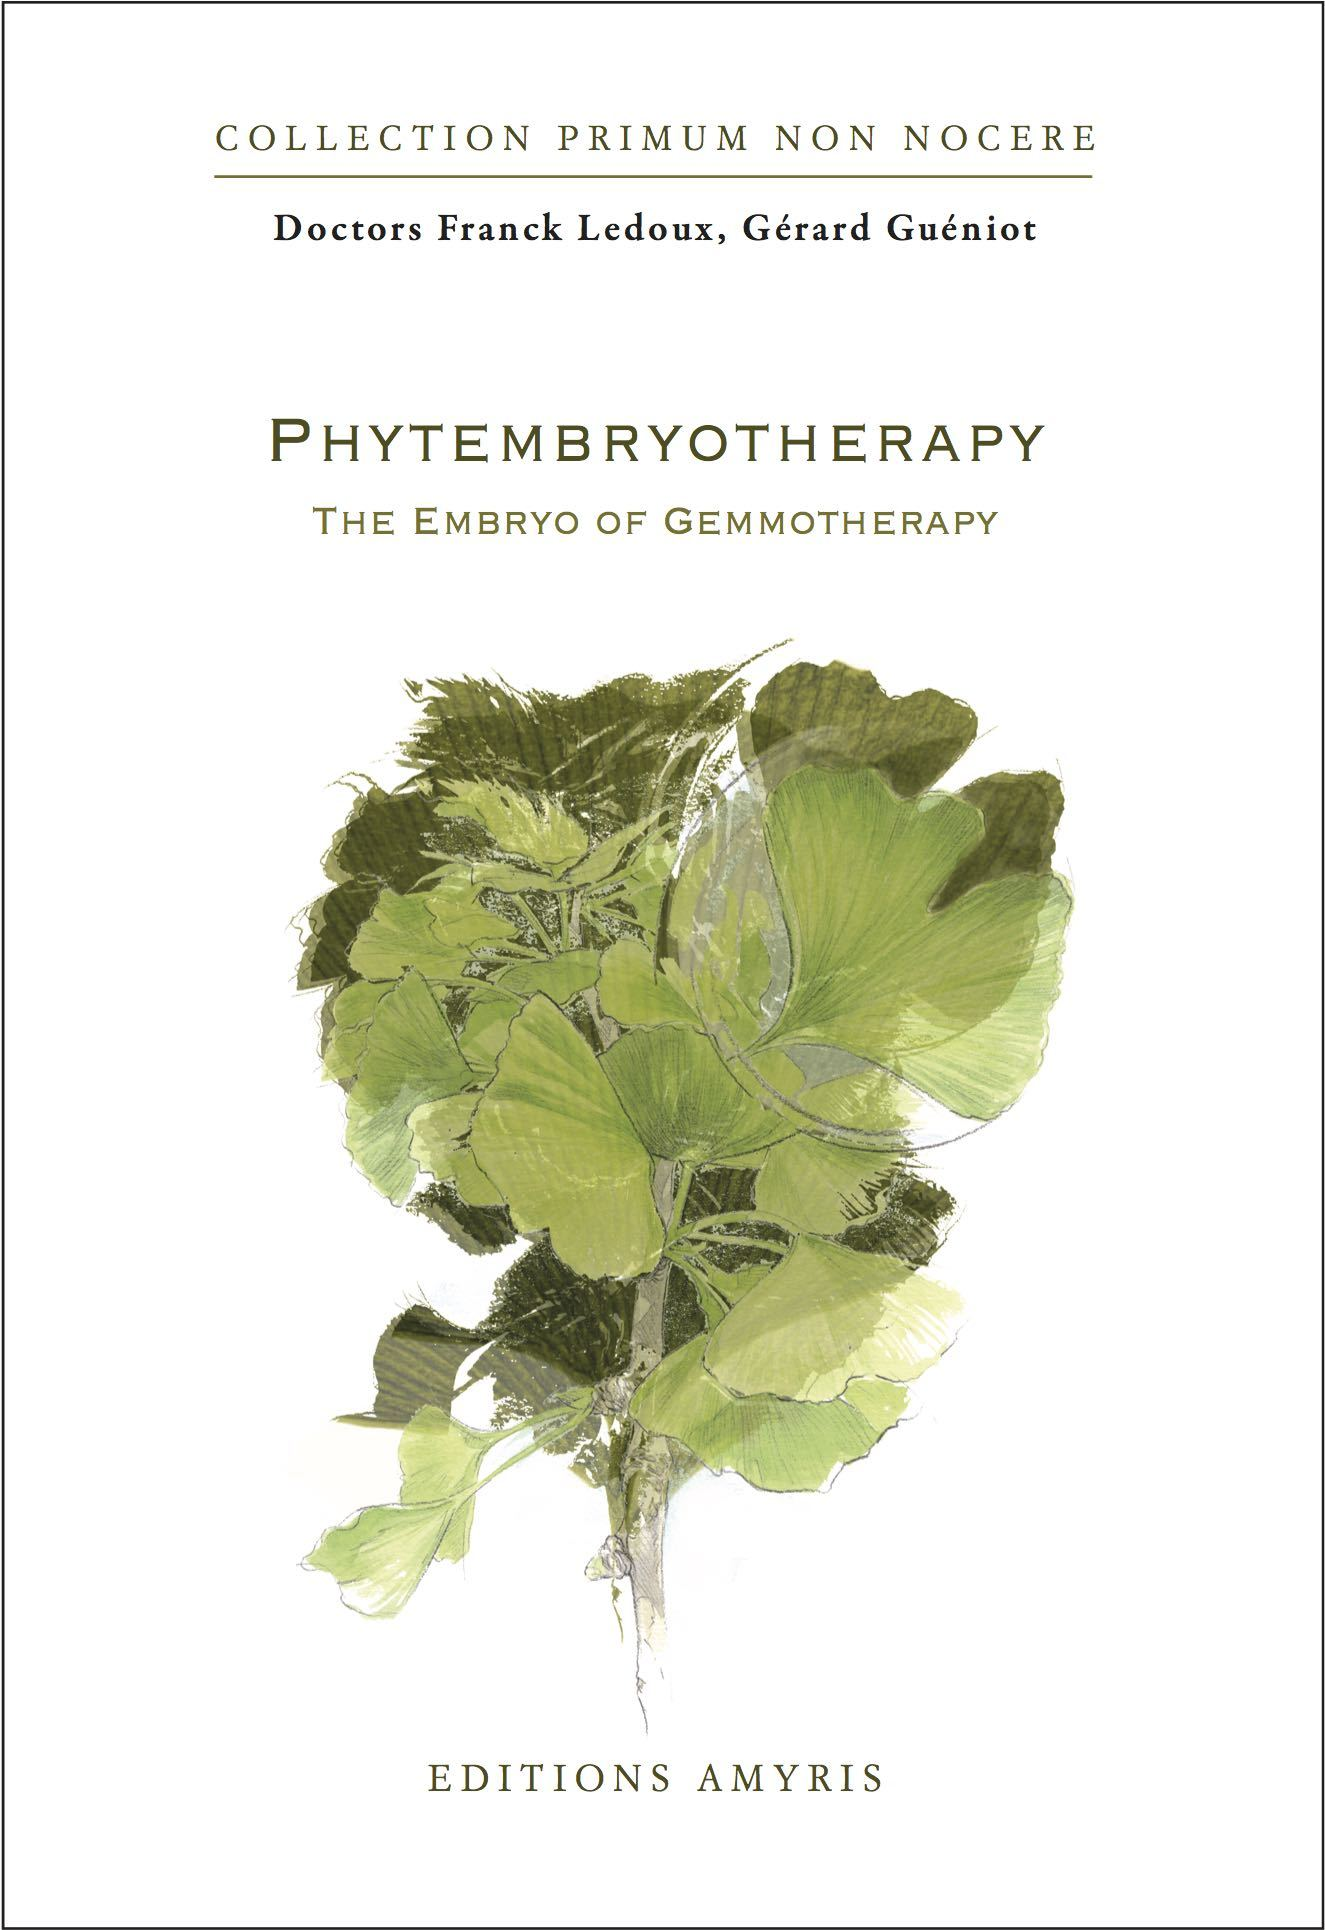 PHYTEMBRYOTHERAPY - THE EMBRYO OF GEMMOTHERAPY